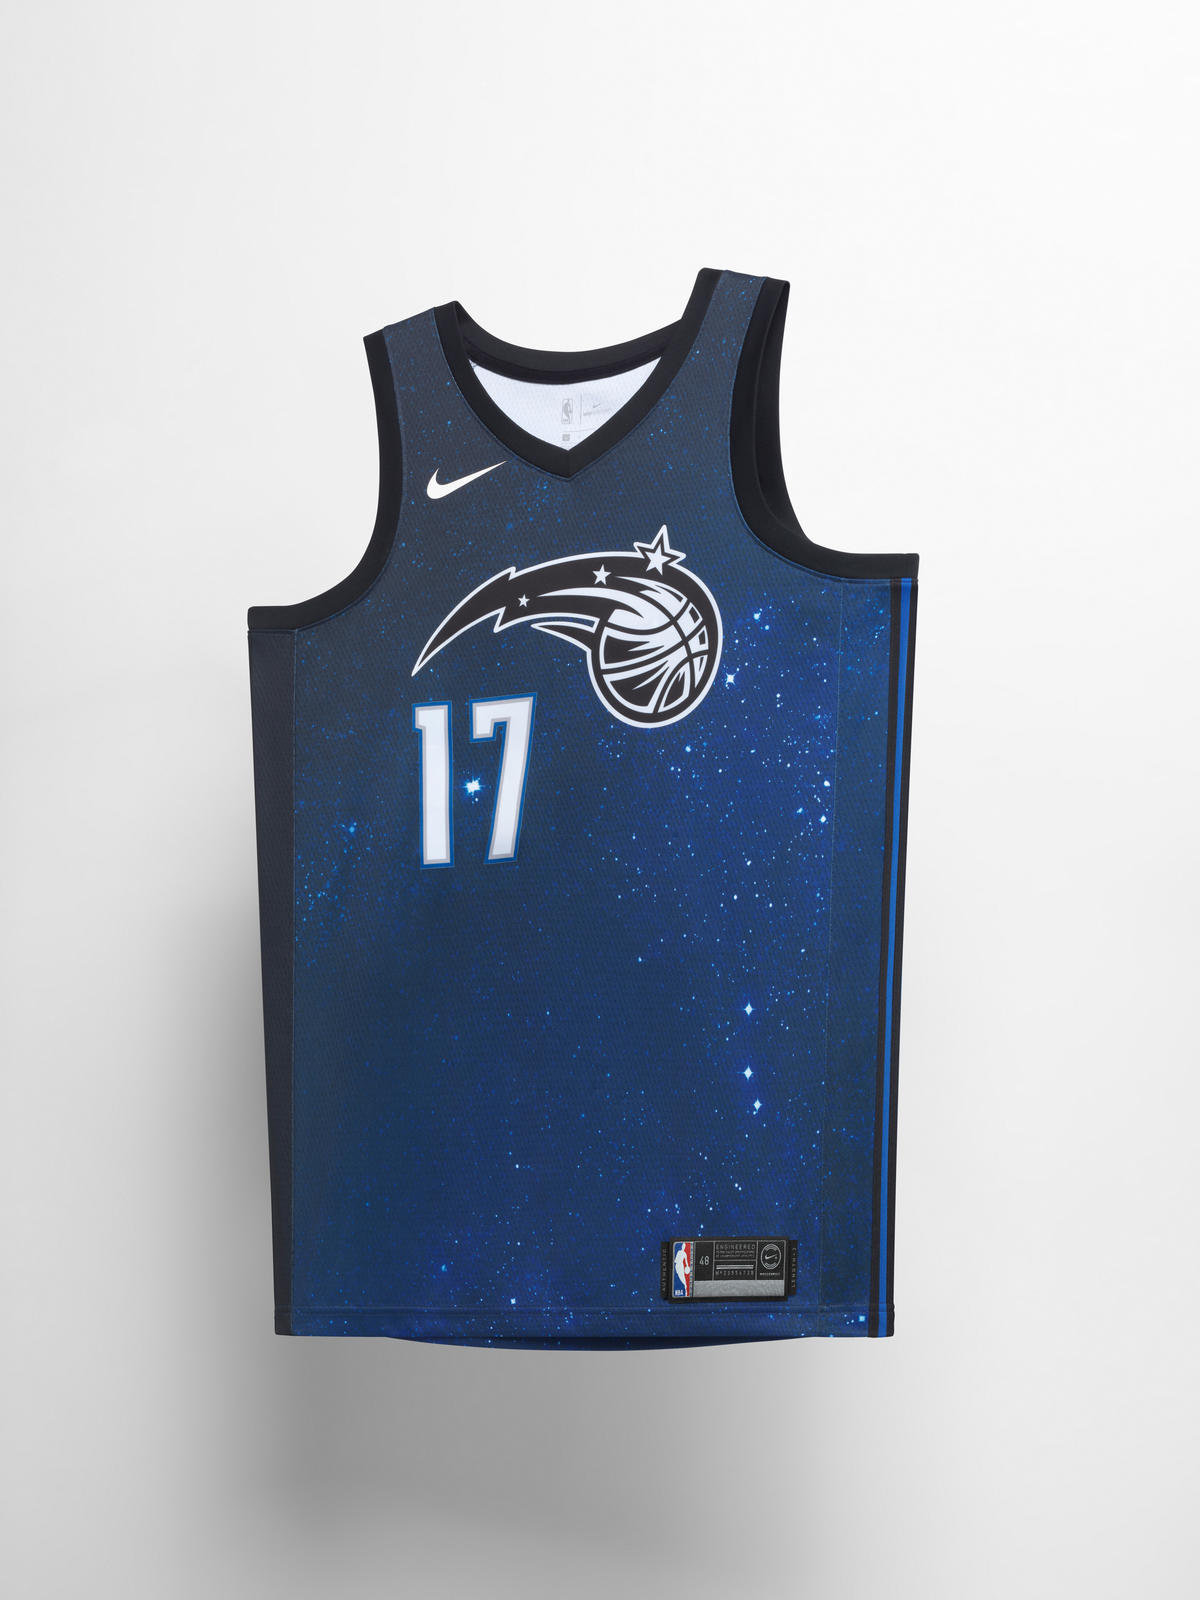 Nike NBA City Edition Uniform 46